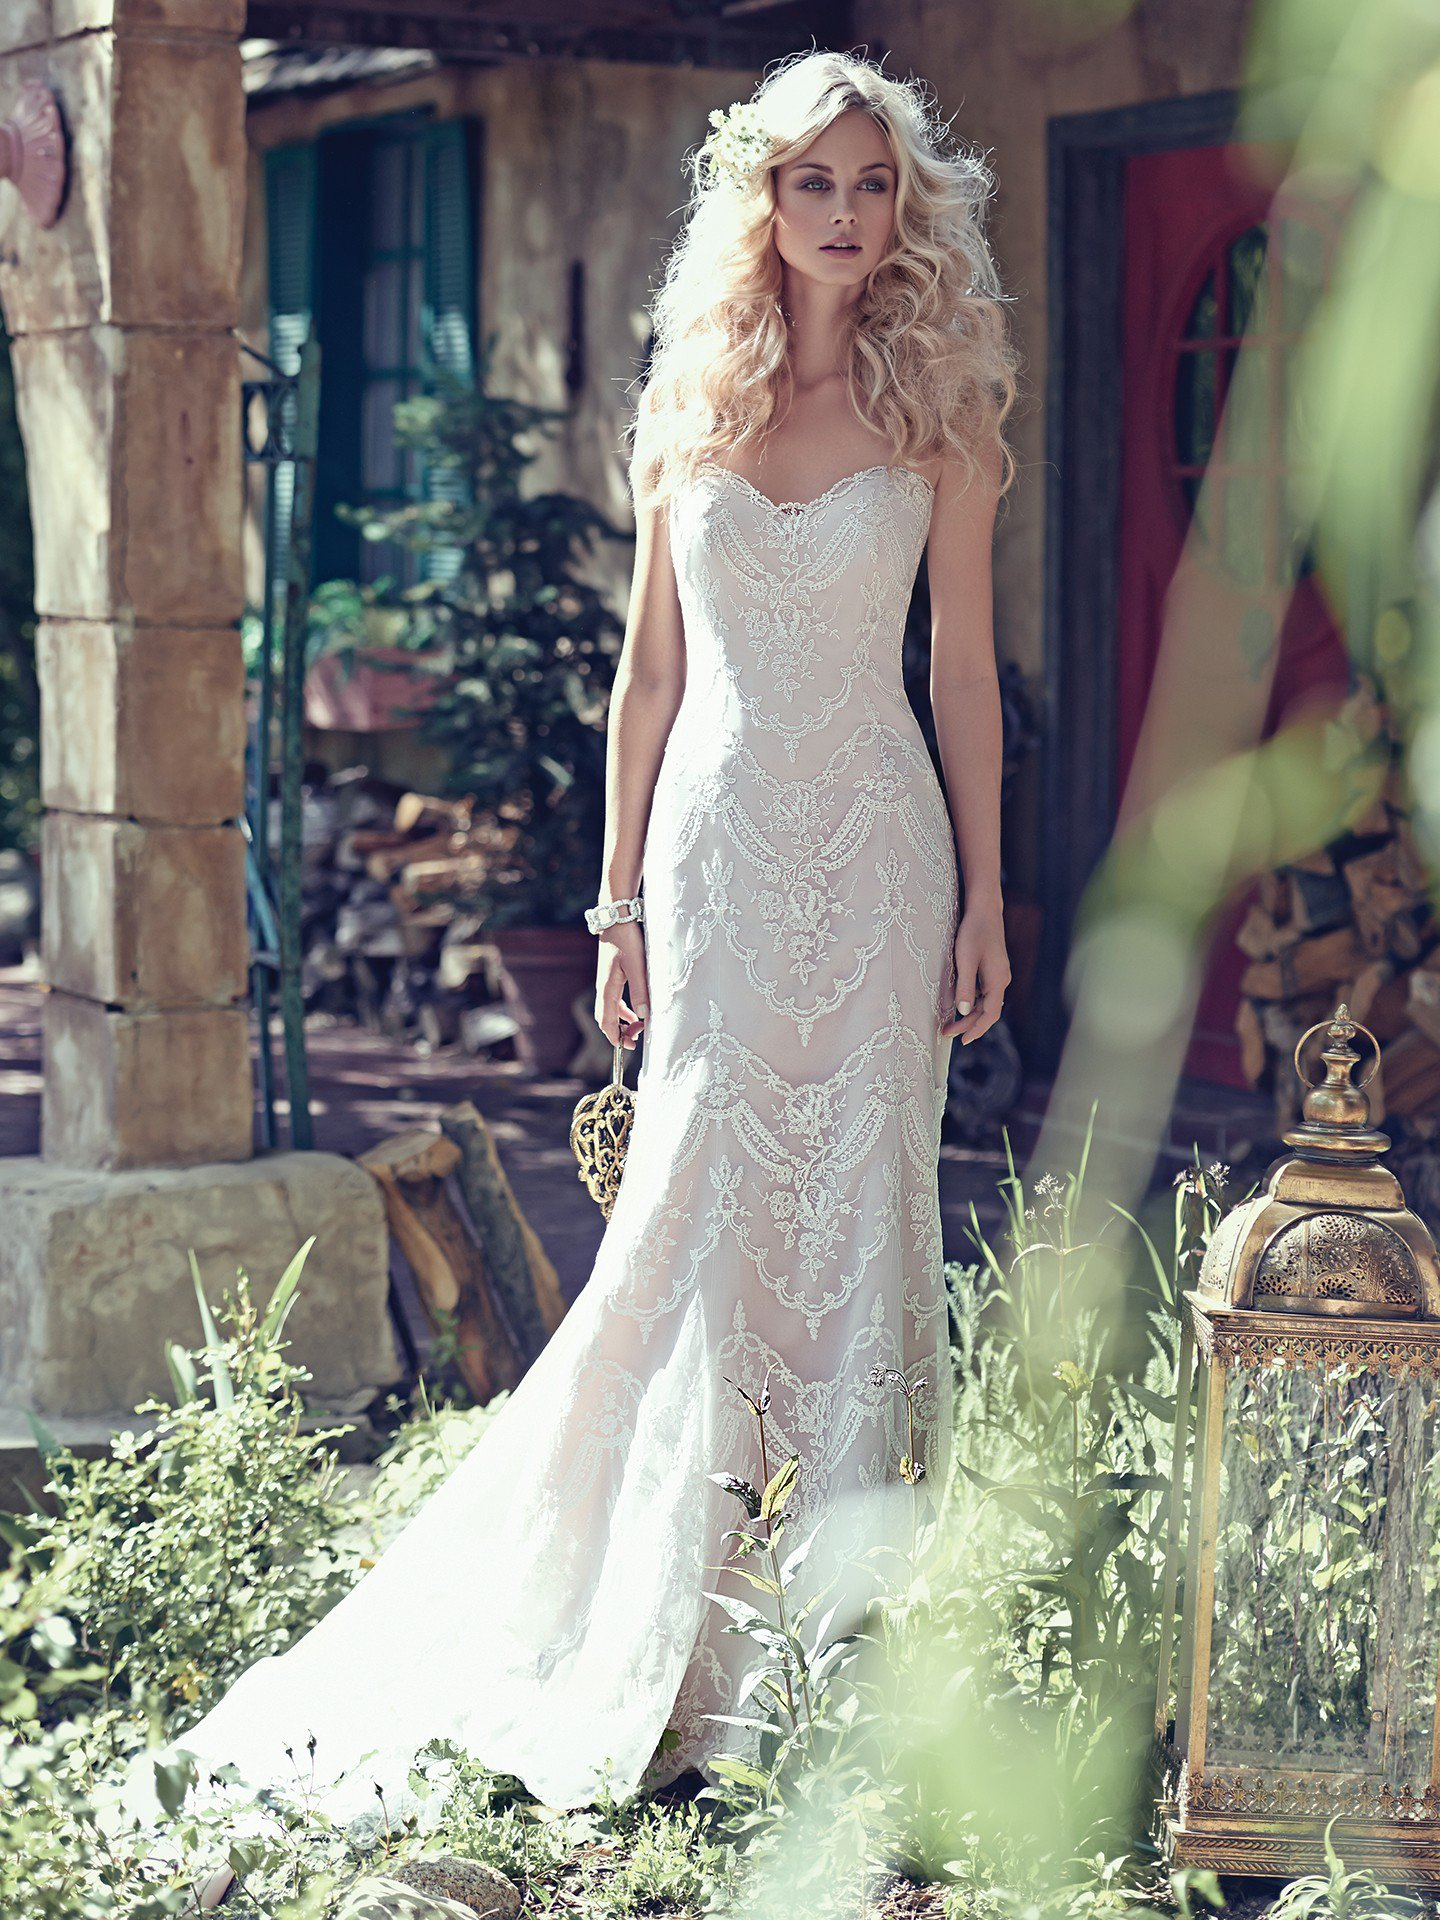 New york bride groom of raleigh premier wedding salon featuring one of our most popular brands maggie sottero from now until march 3 get a 50 new yew bride gift card with any maggie sottero wedding gown ombrellifo Image collections